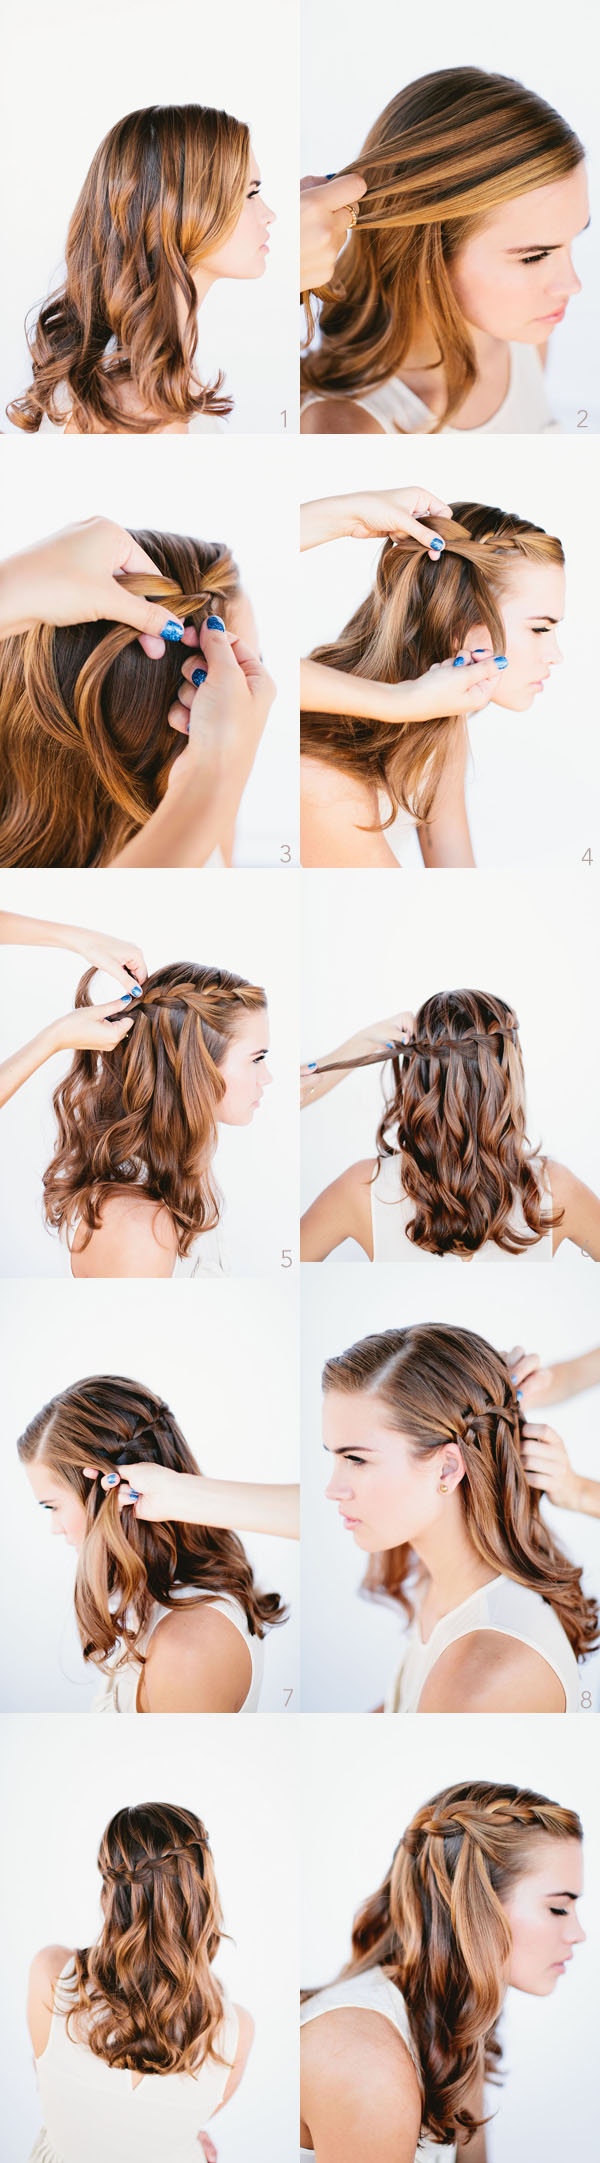 Hairstyles for Long Hair Step by Step-18